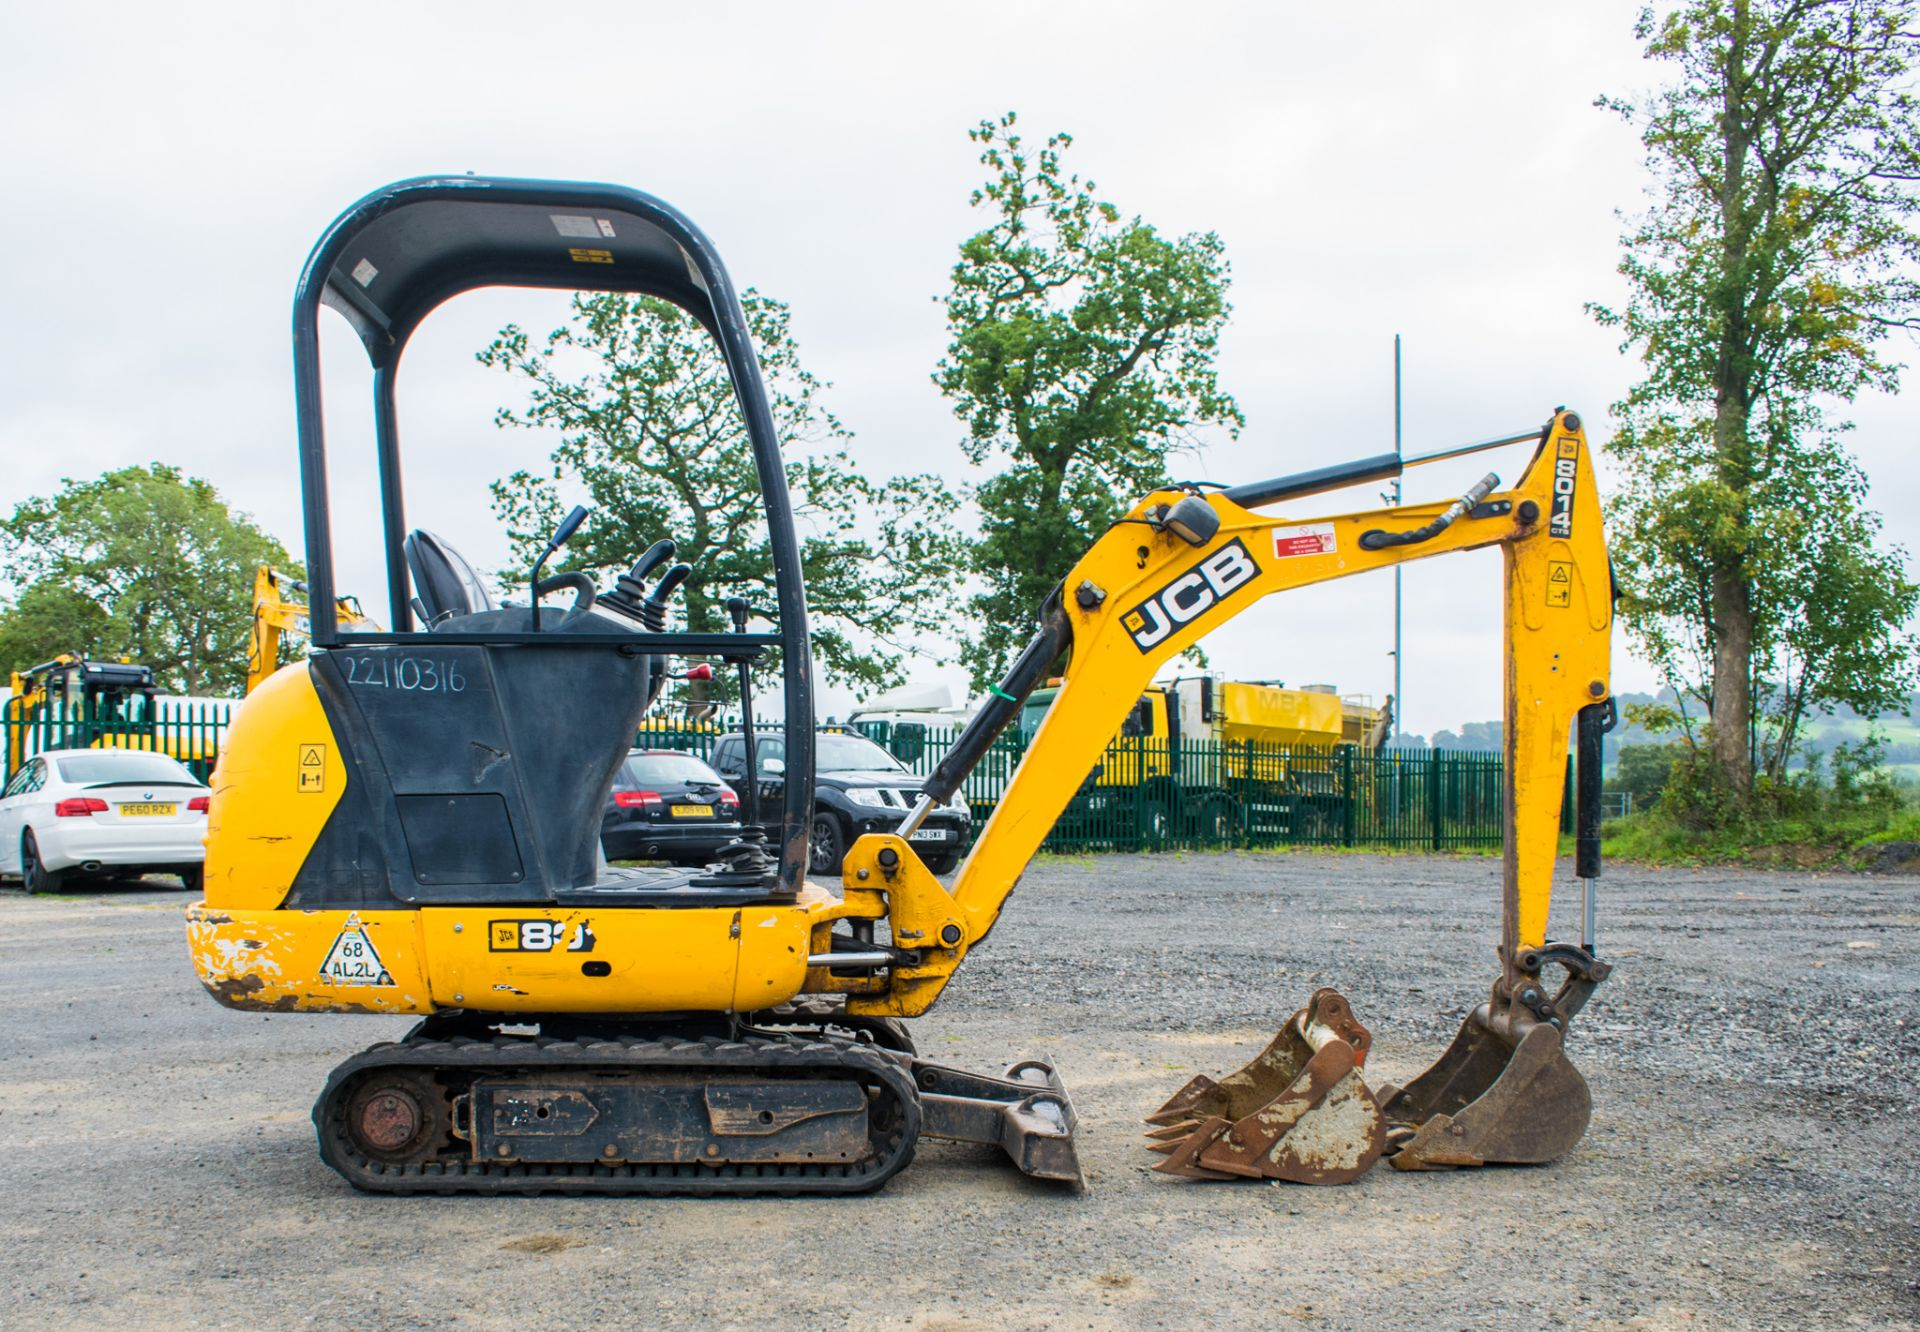 Lot 17 - JCB 8014 CTS 1.4 tonne rubber tracked mini excavator  Year: 2014 S/N: 70483 Recorded Hour: 1700